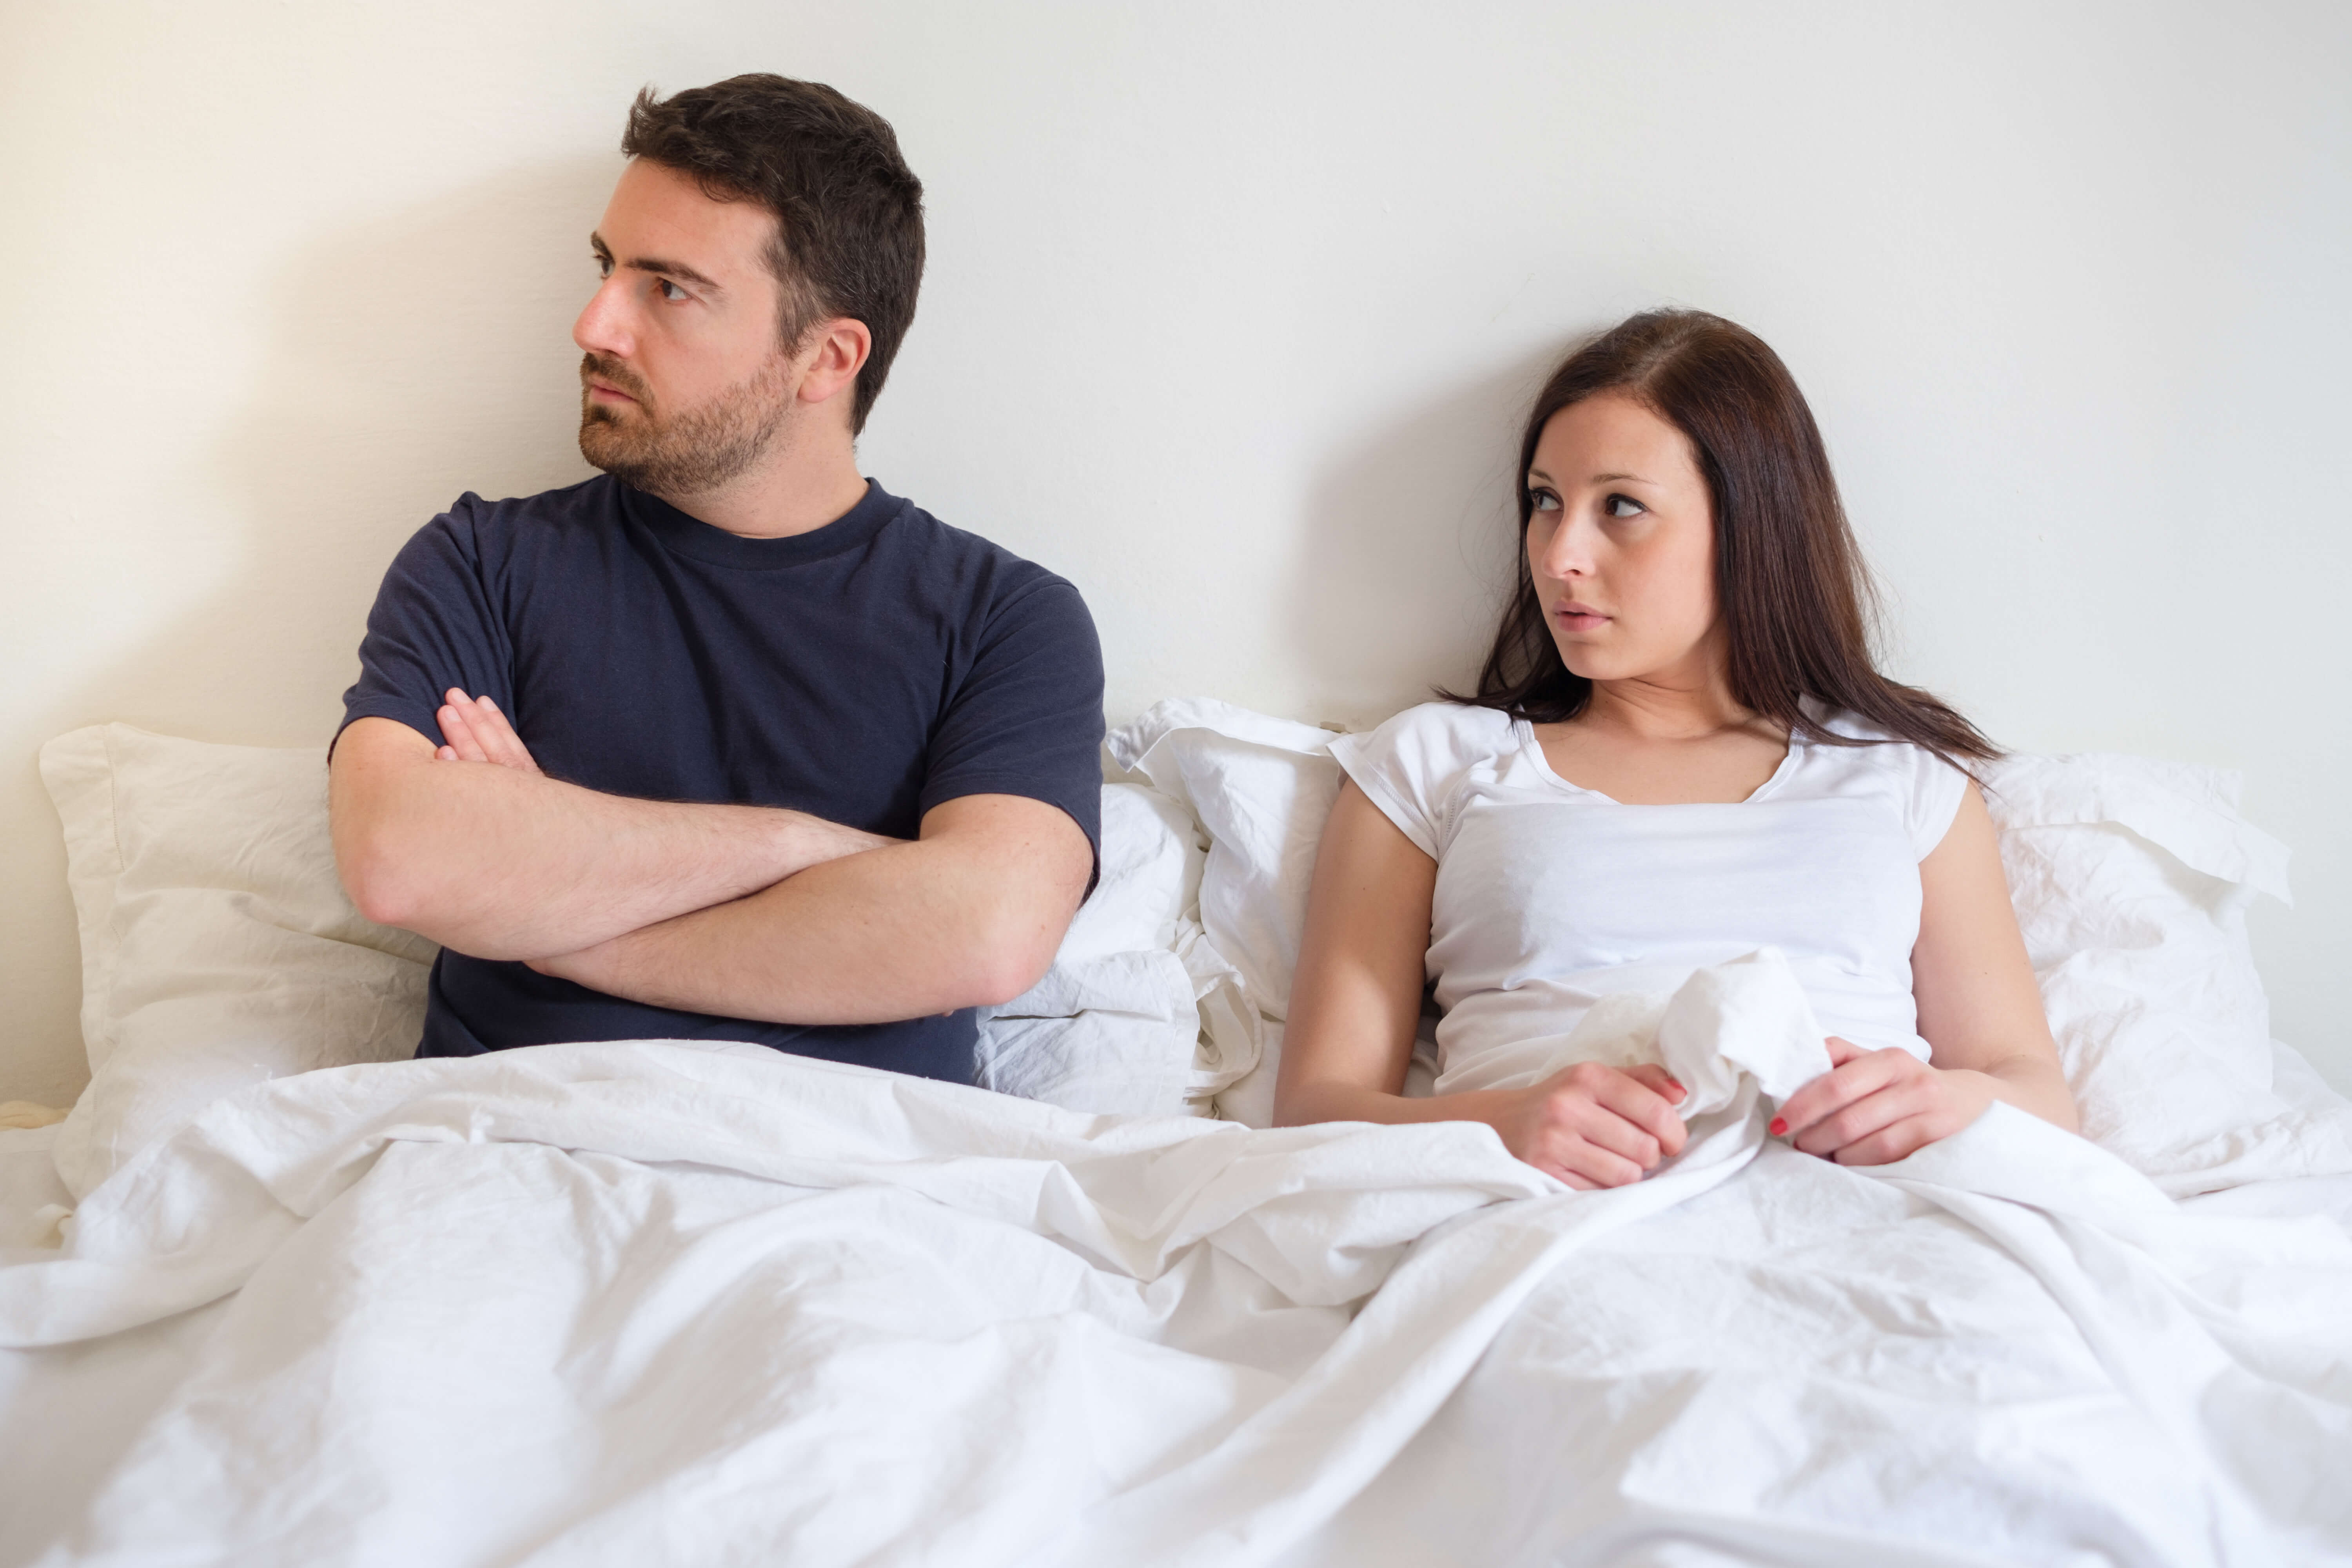 Roommate Zone and why relationships fail